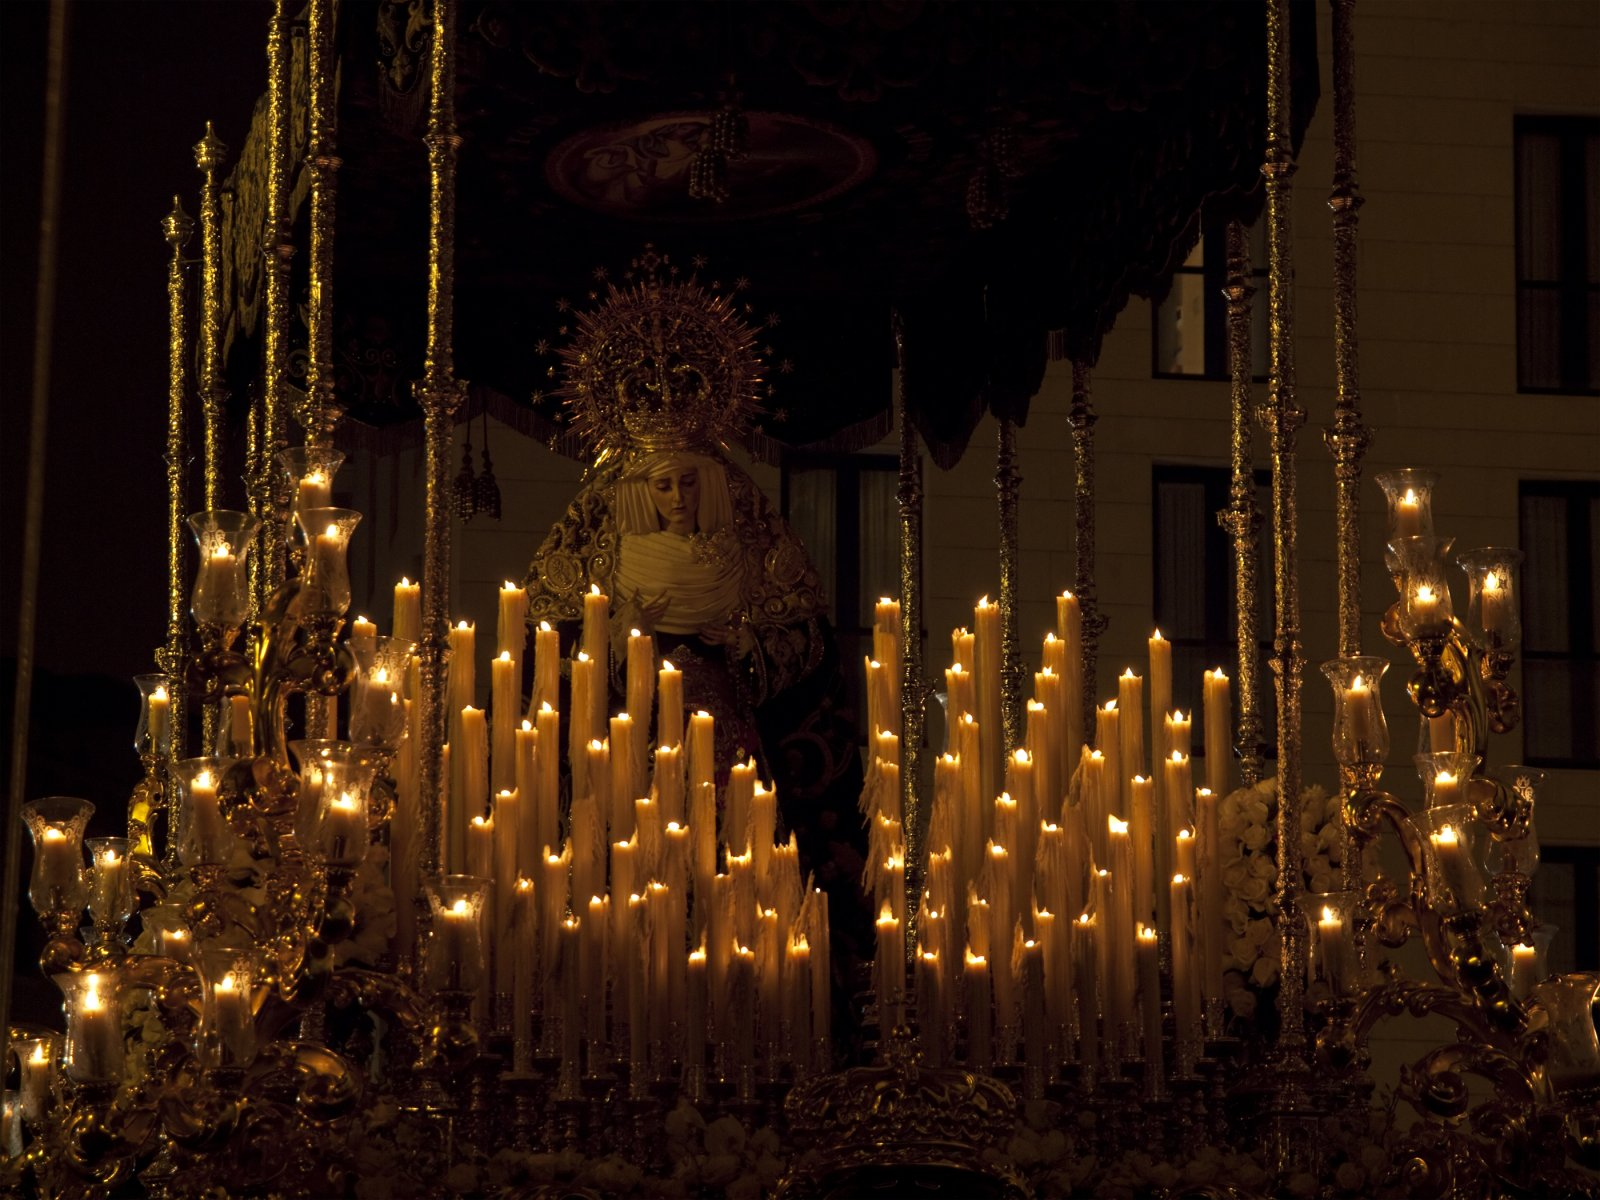 Candlelit Sculpture of the Virgin Mary